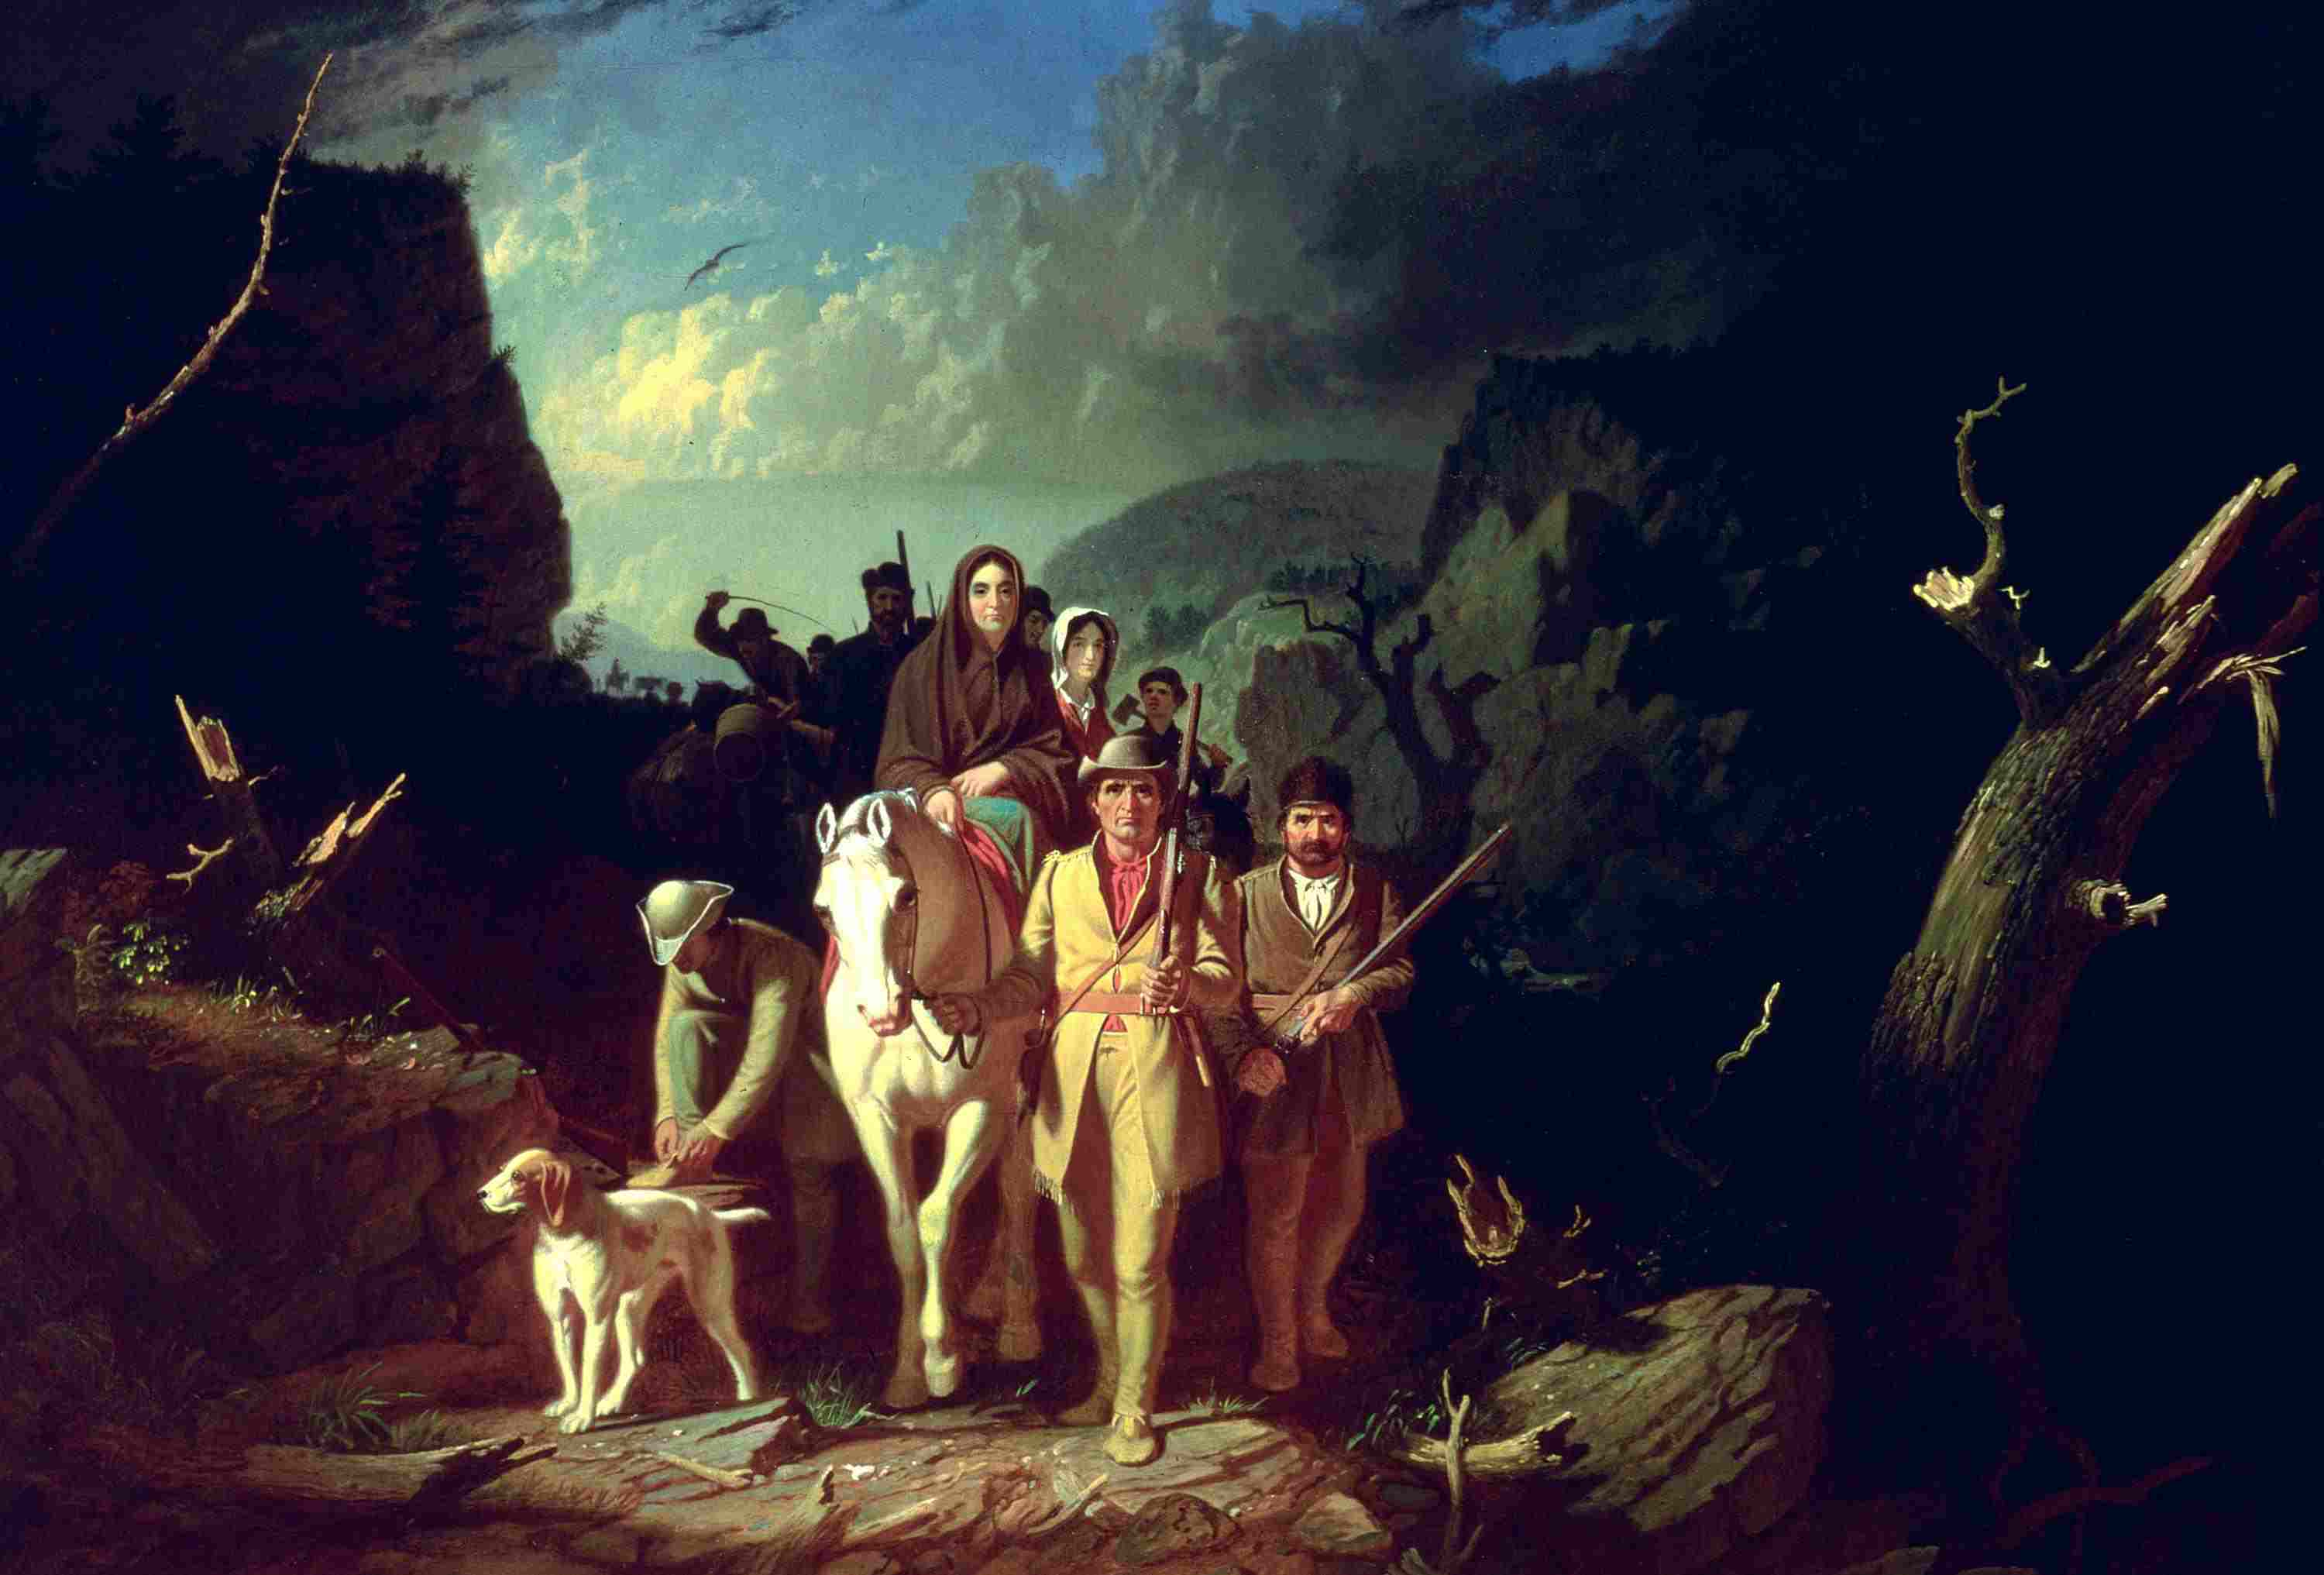 Full color painting of Daniel Boone leading settlers on the Wilderness Road.